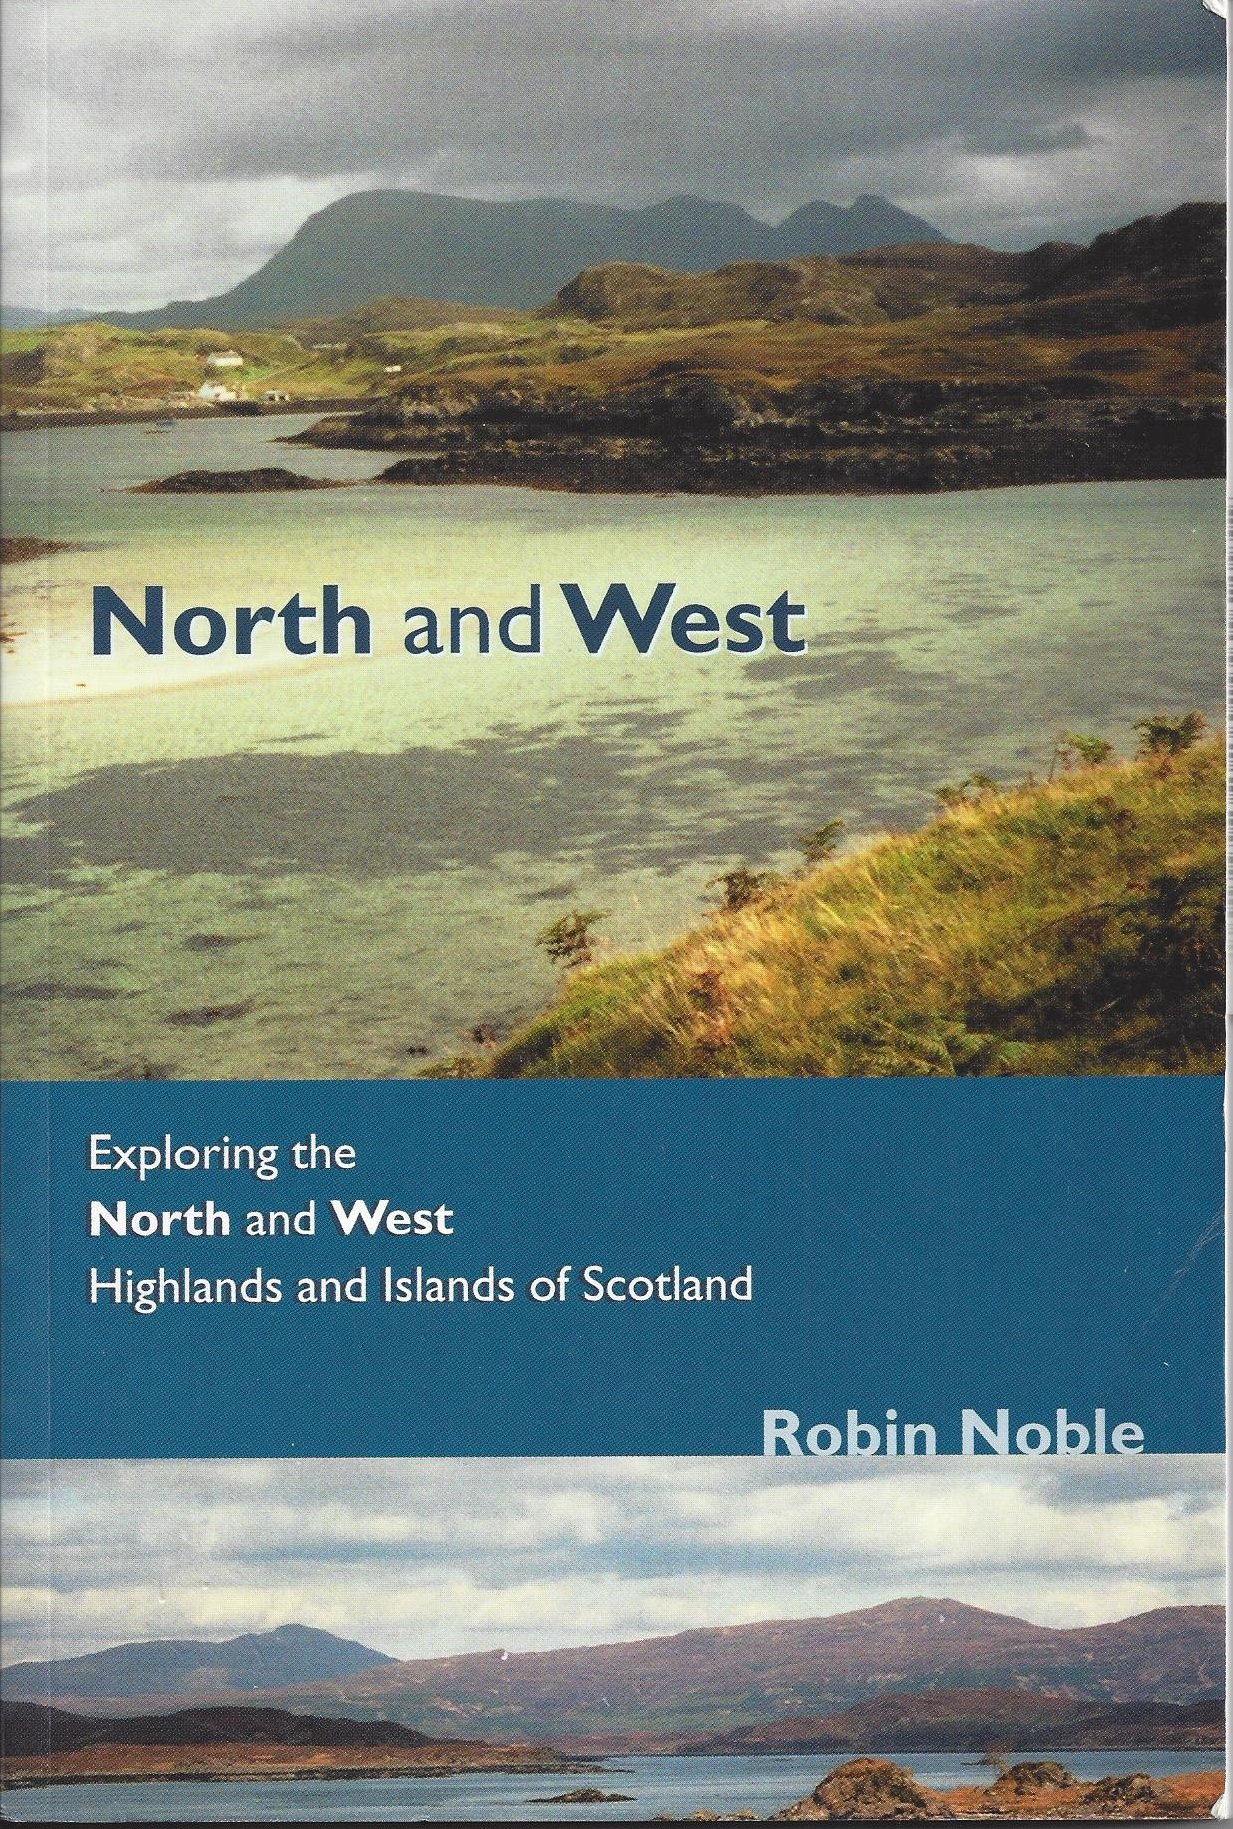 North and West: Exploring the North & West Highlands and Islands of Scotland